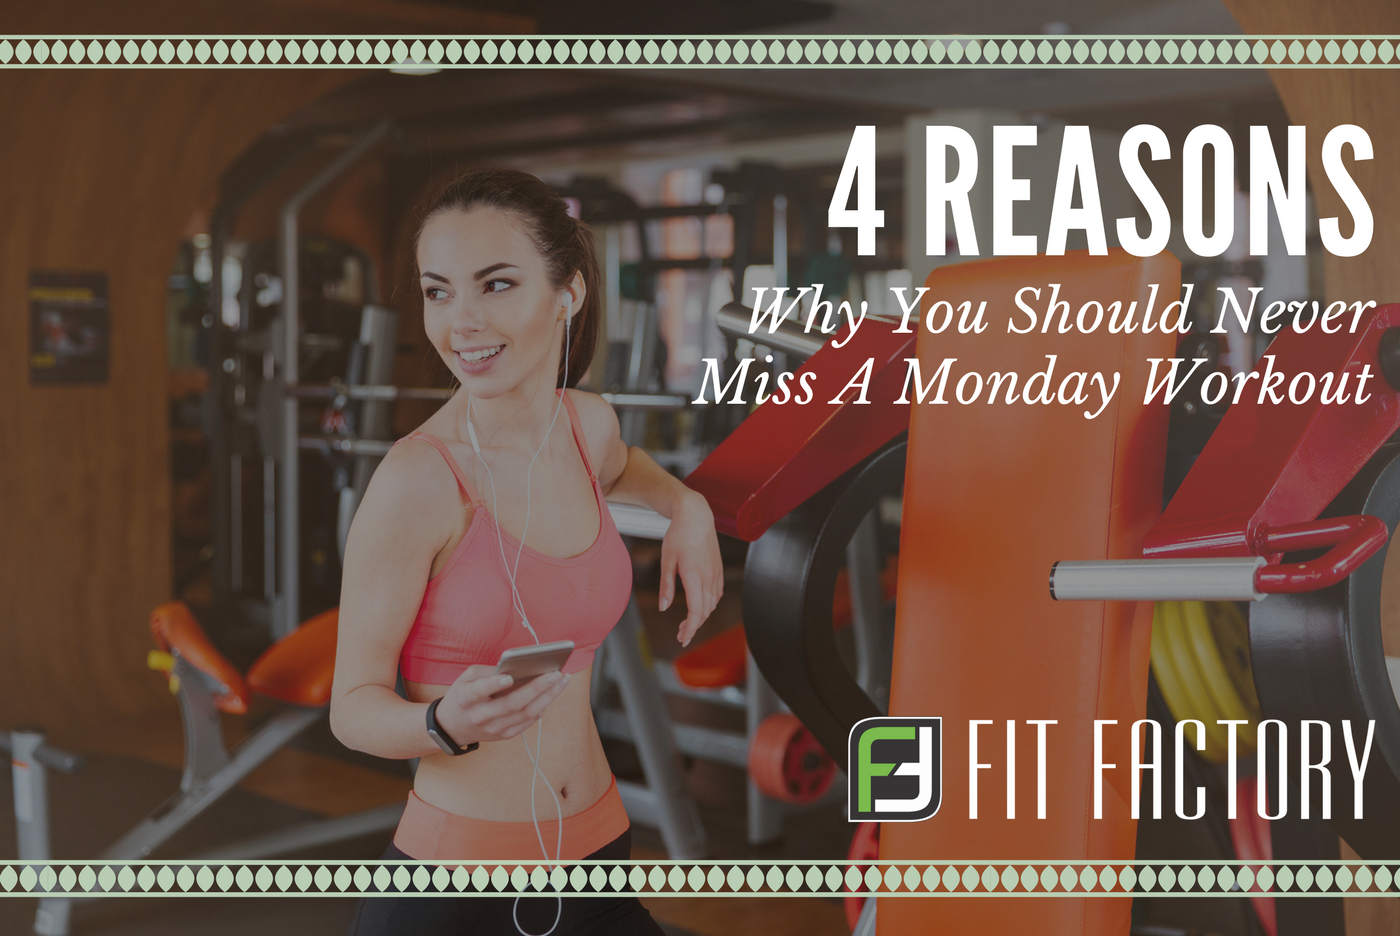 4 Reasons You Should Never Miss a Monday Workout